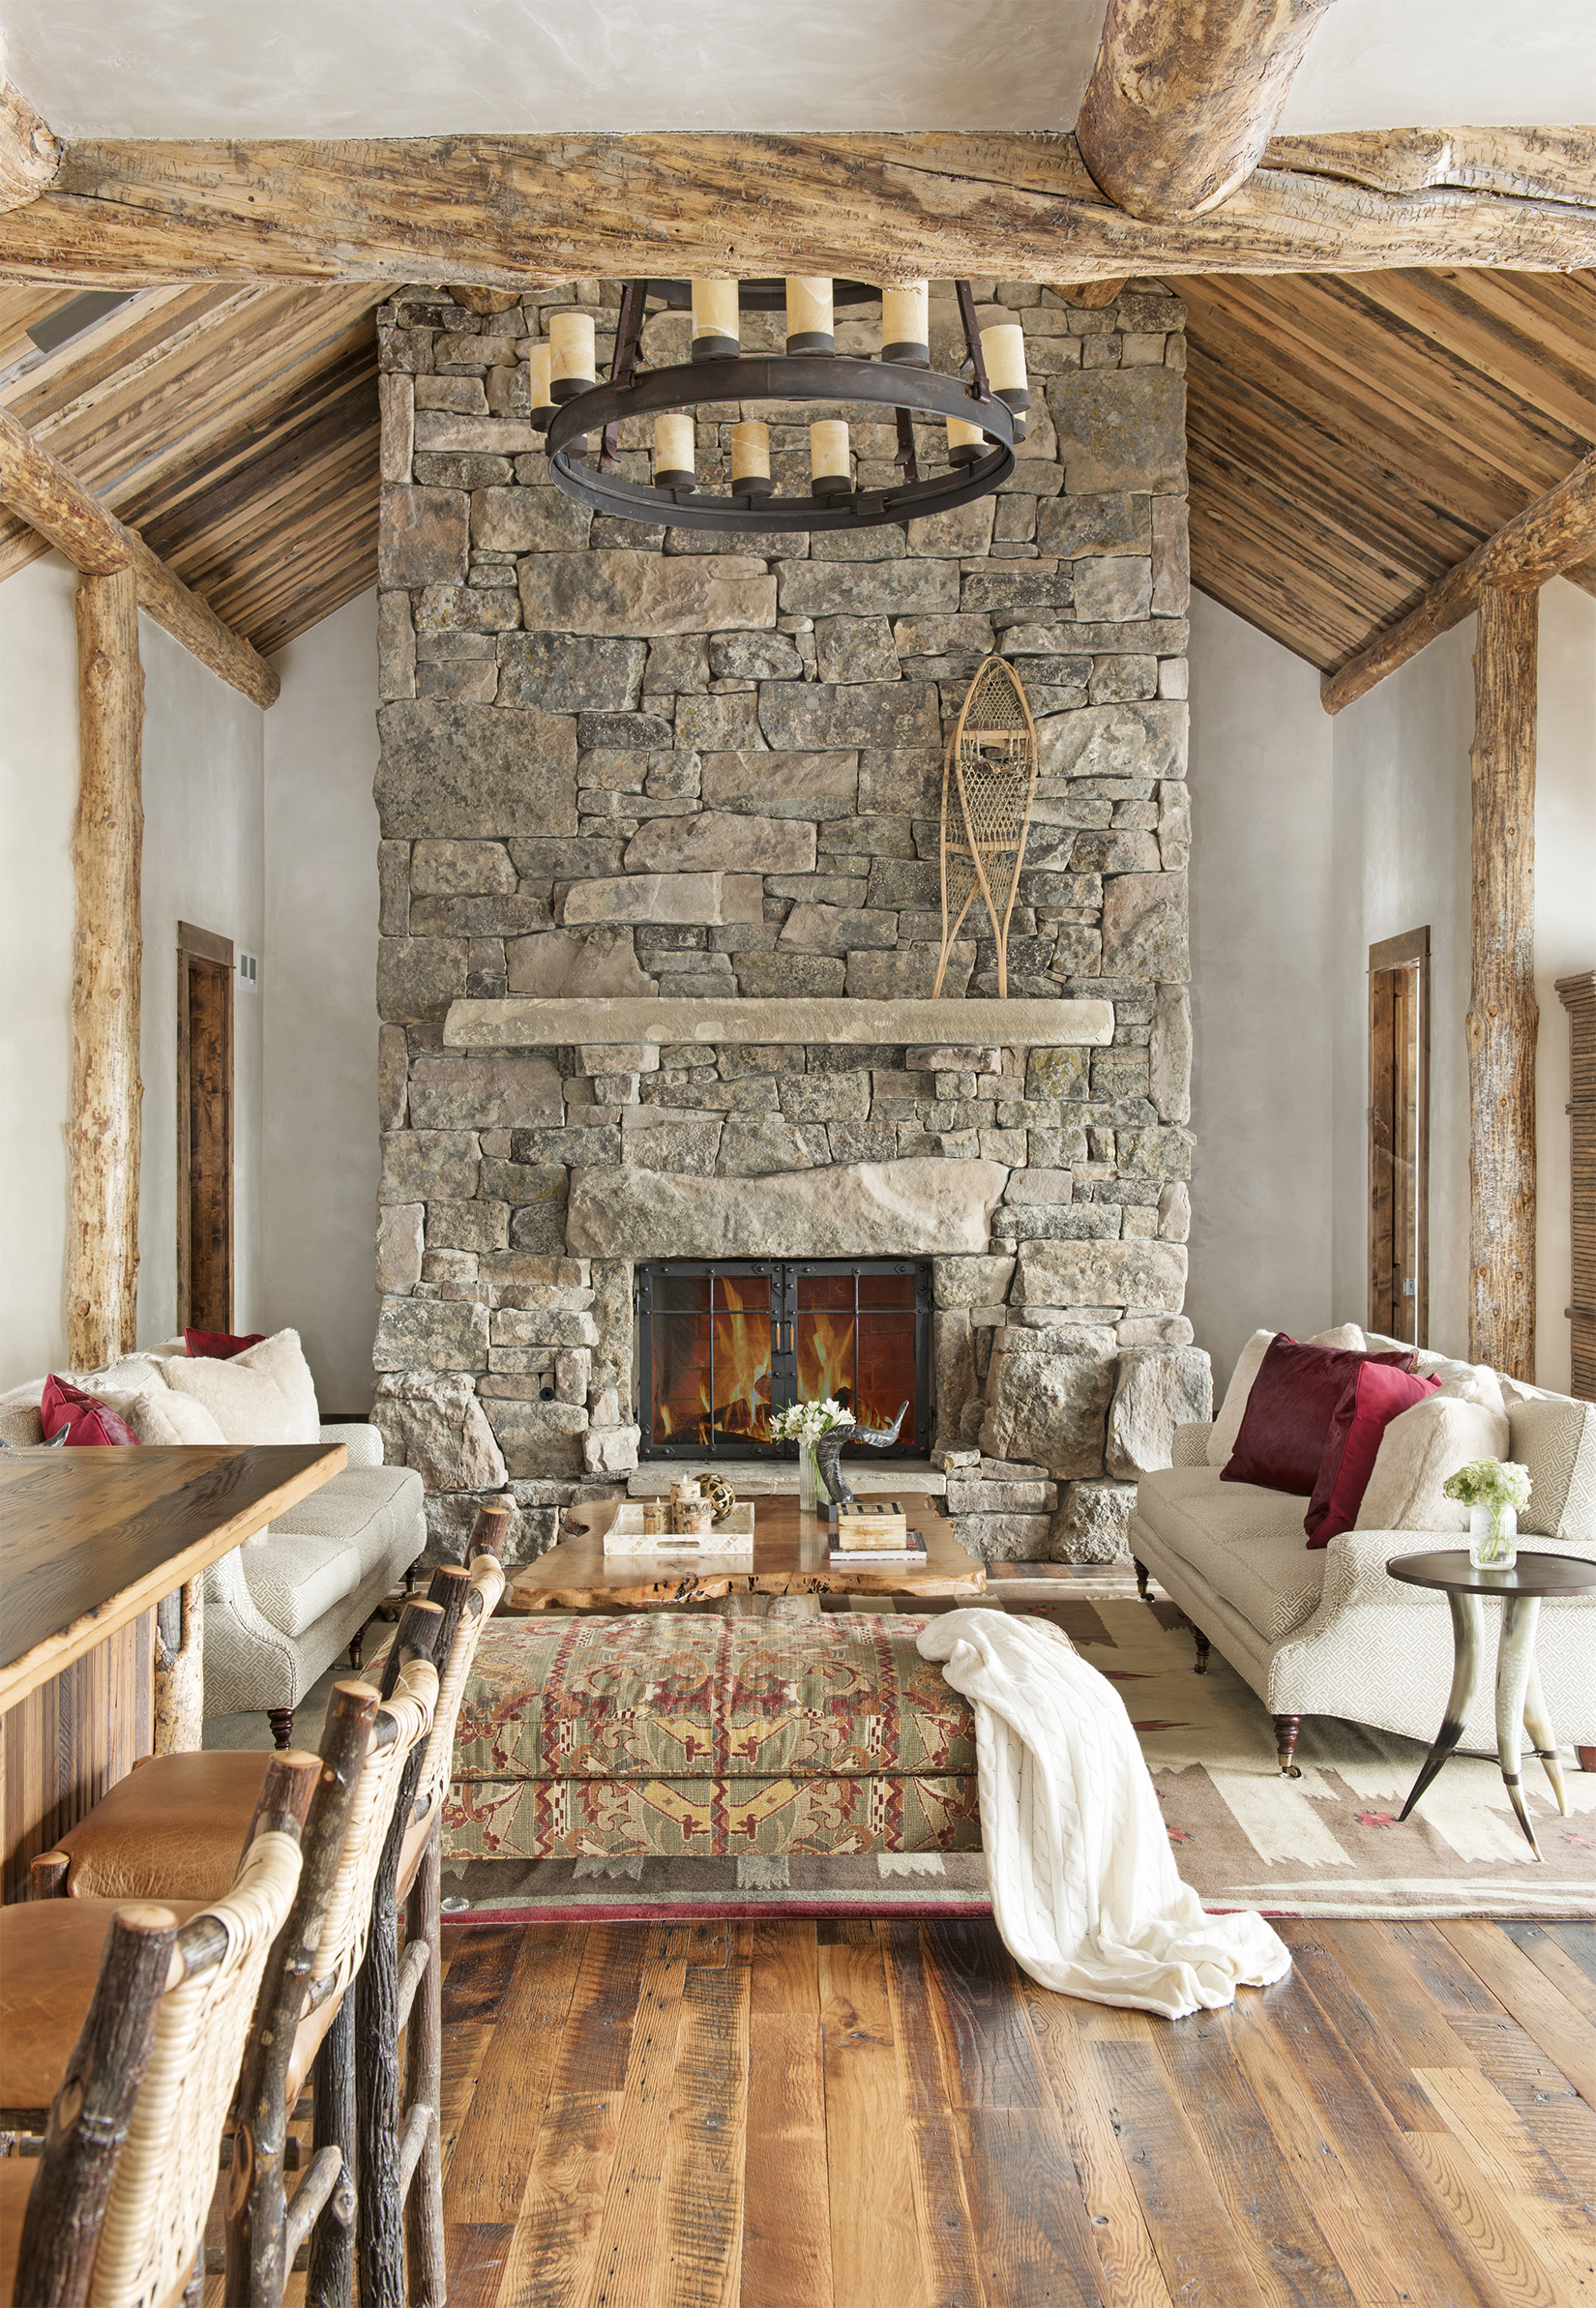 The textures are so impressive in this room - from the custom stone fireplace to the wood floor and wood beams throughout. Very impressive. Located in  Yellowstone Club.